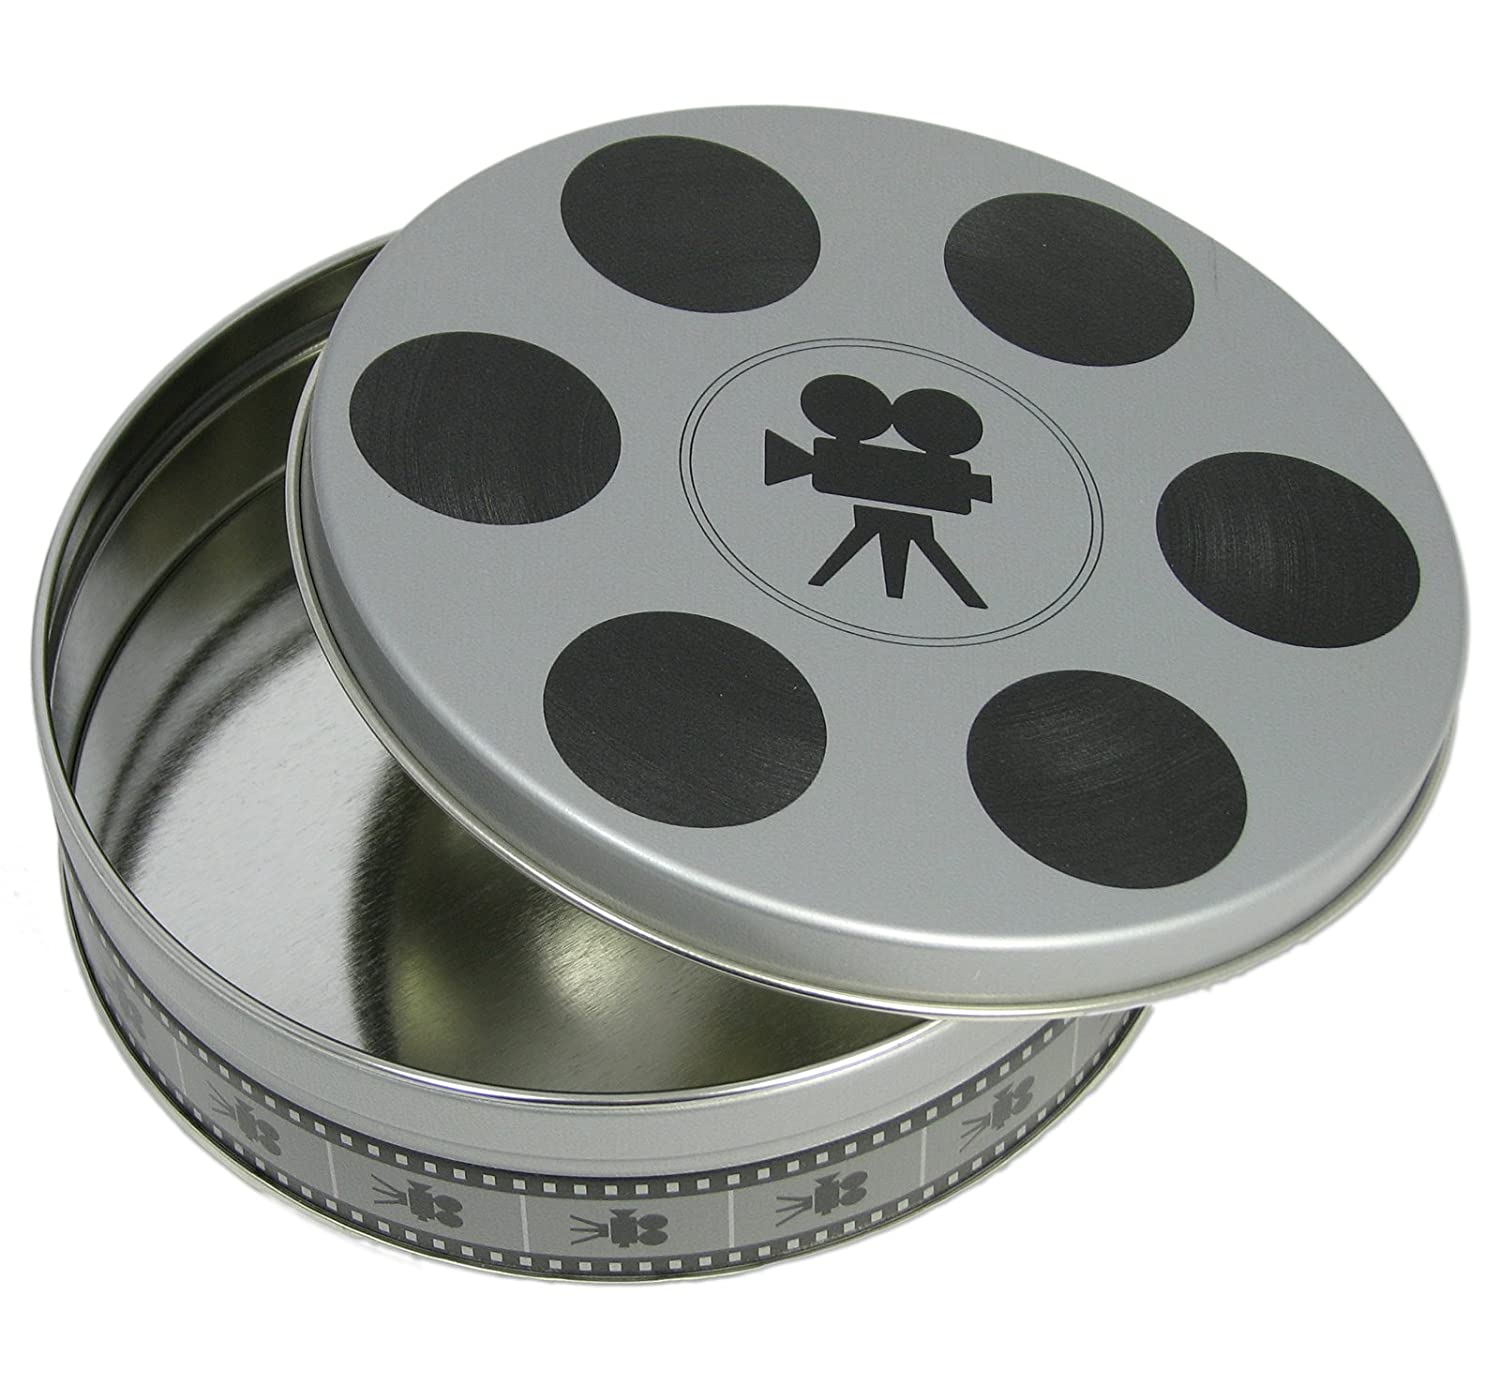 1pc. Flat Round Tin - Small Film Reel (6 11/16-inch diameter) C. B. Gitty Crafter Supply 33-007-01